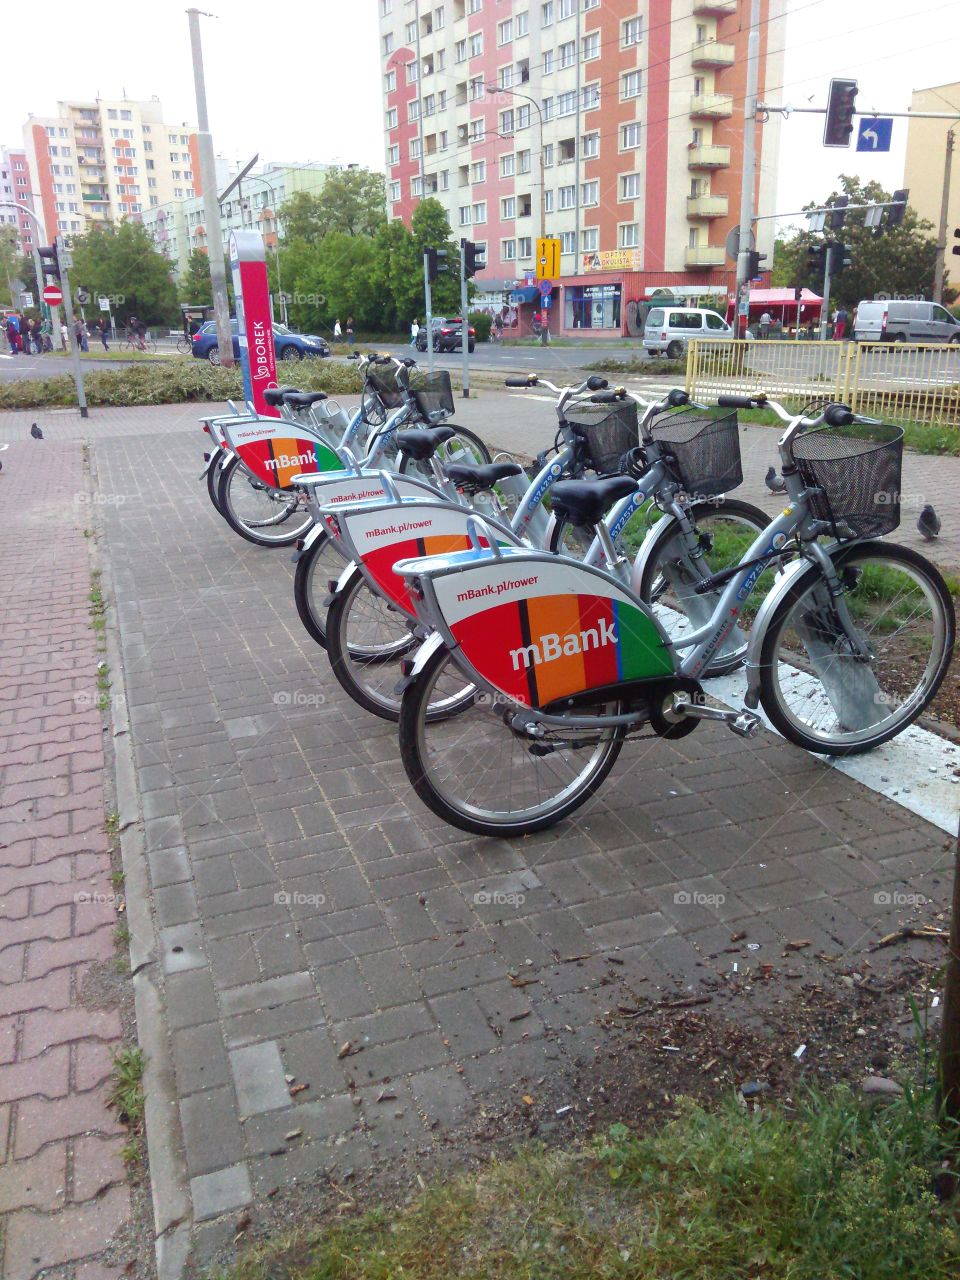 bicycles for hire. This photo has been taken in Wroclaw city